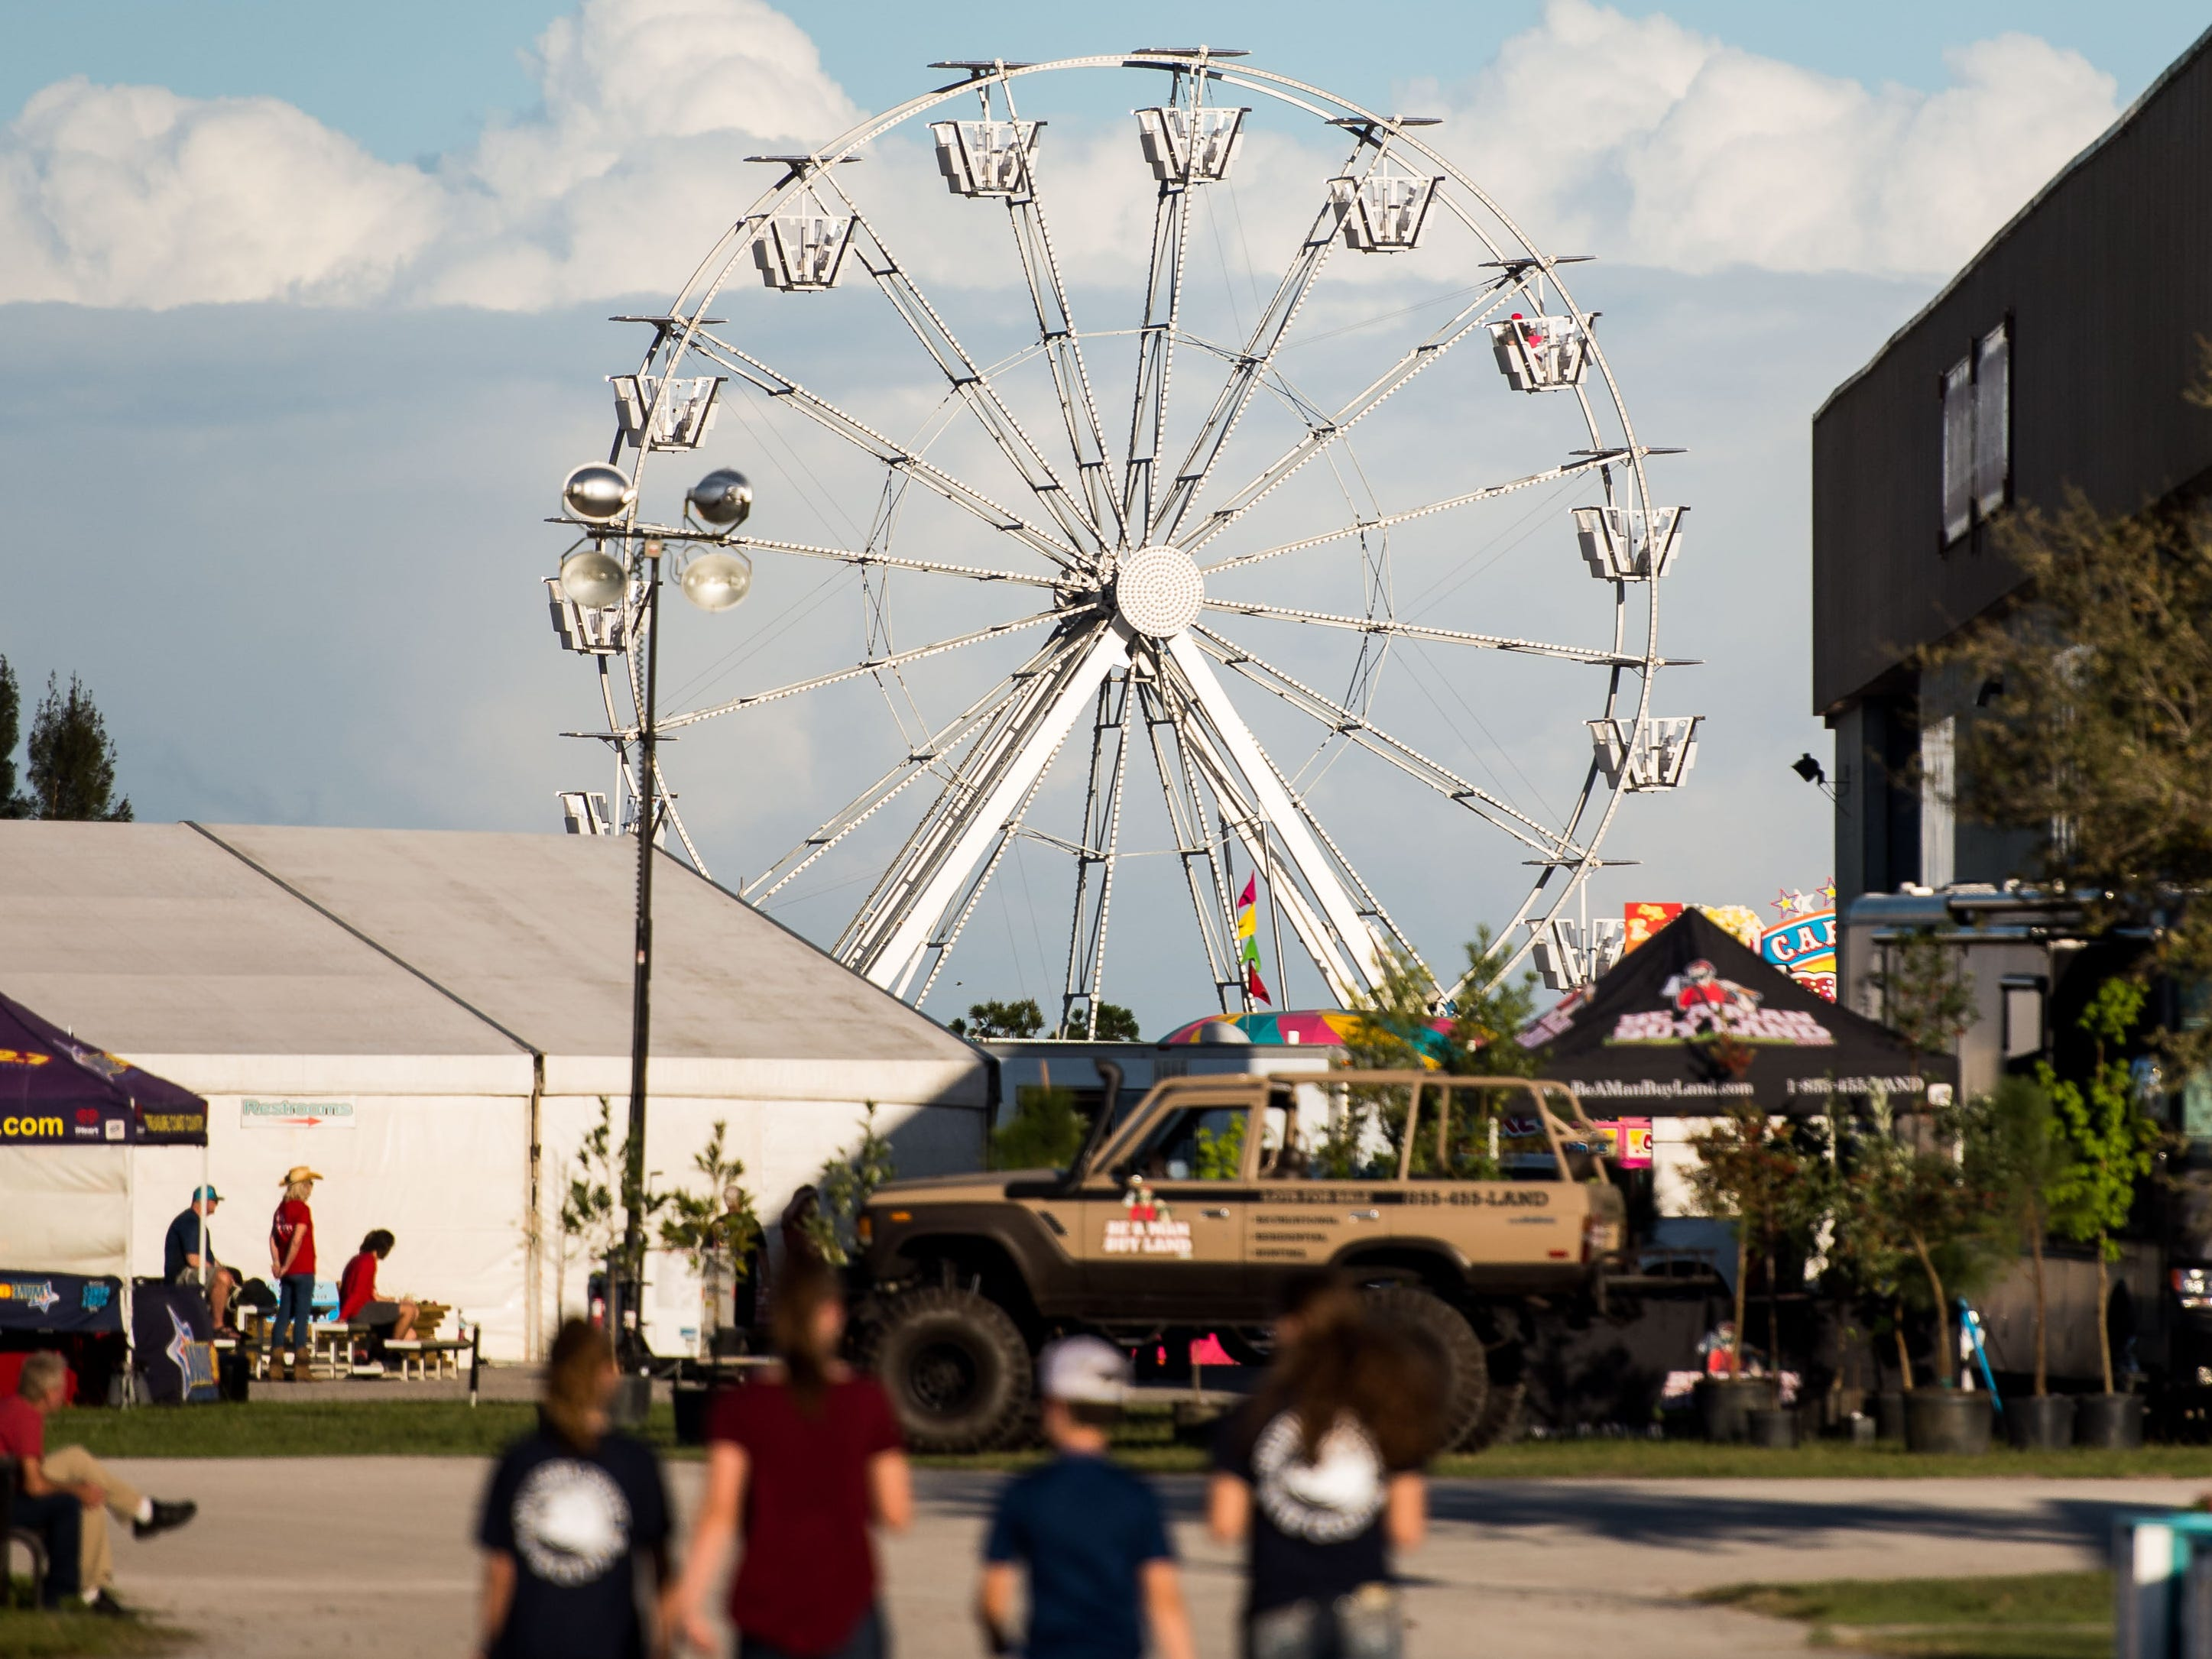 The 54th annual St. Lucie County Fair is seen opening night Friday, Feb. 22, 2019, at the St. Lucie County Fairgrounds at 15601 West Midway Road in Fort Pierce. For more information on the fair, which runs through March 3, go to www.stluciecountyfair.org.